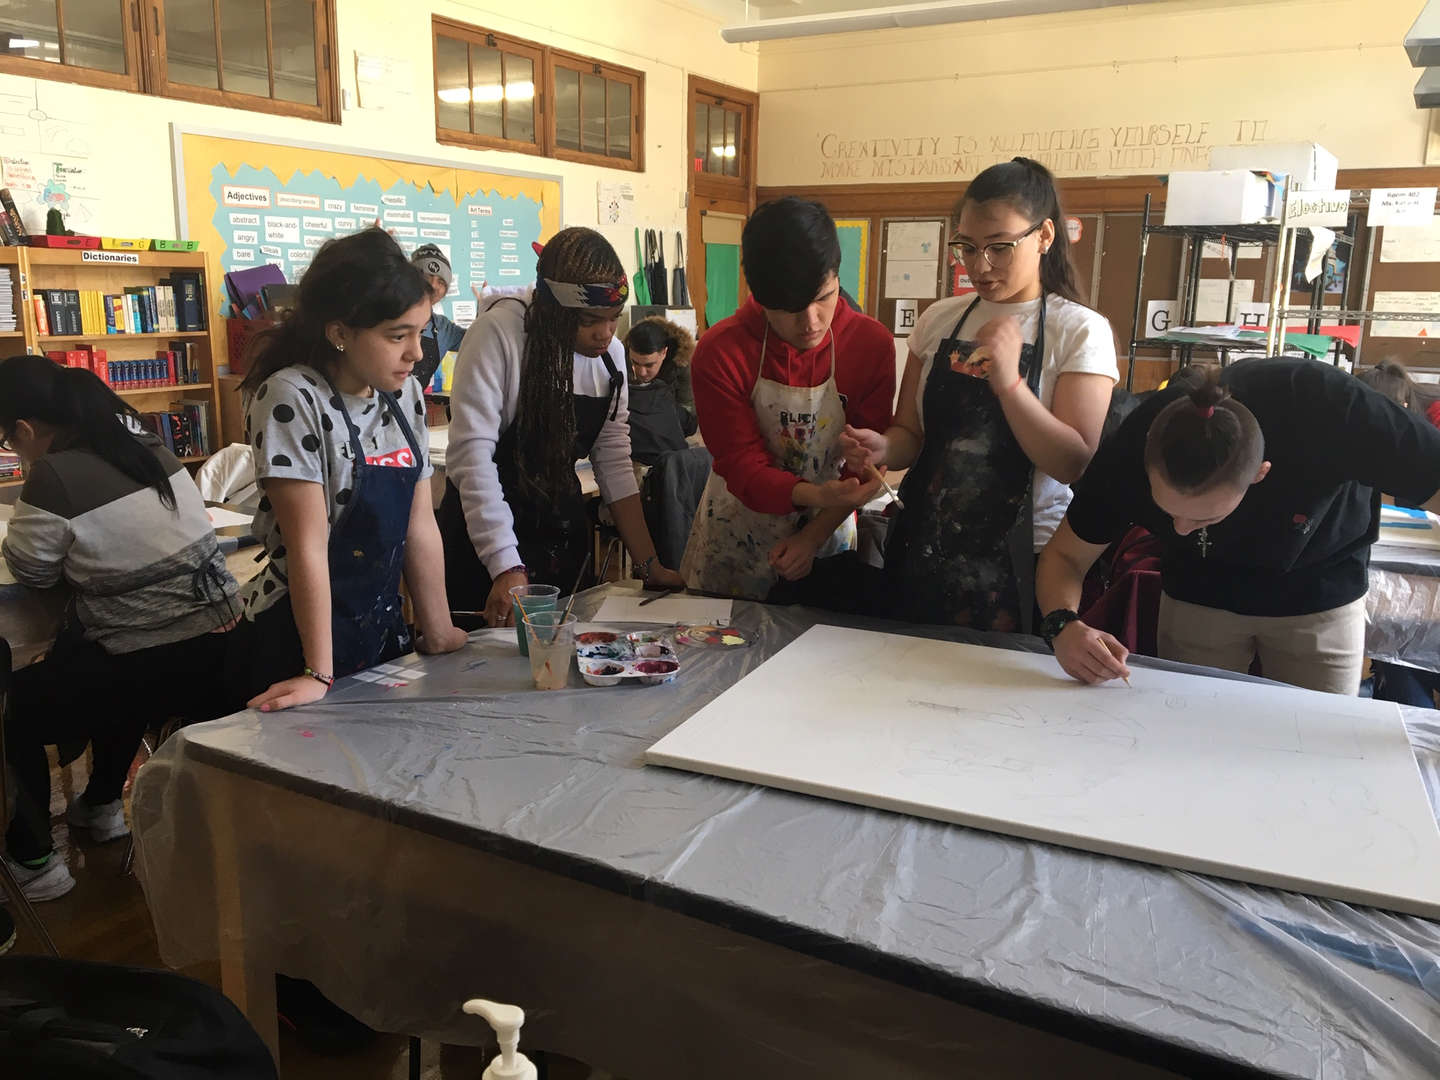 Five students creating a piece of artwork